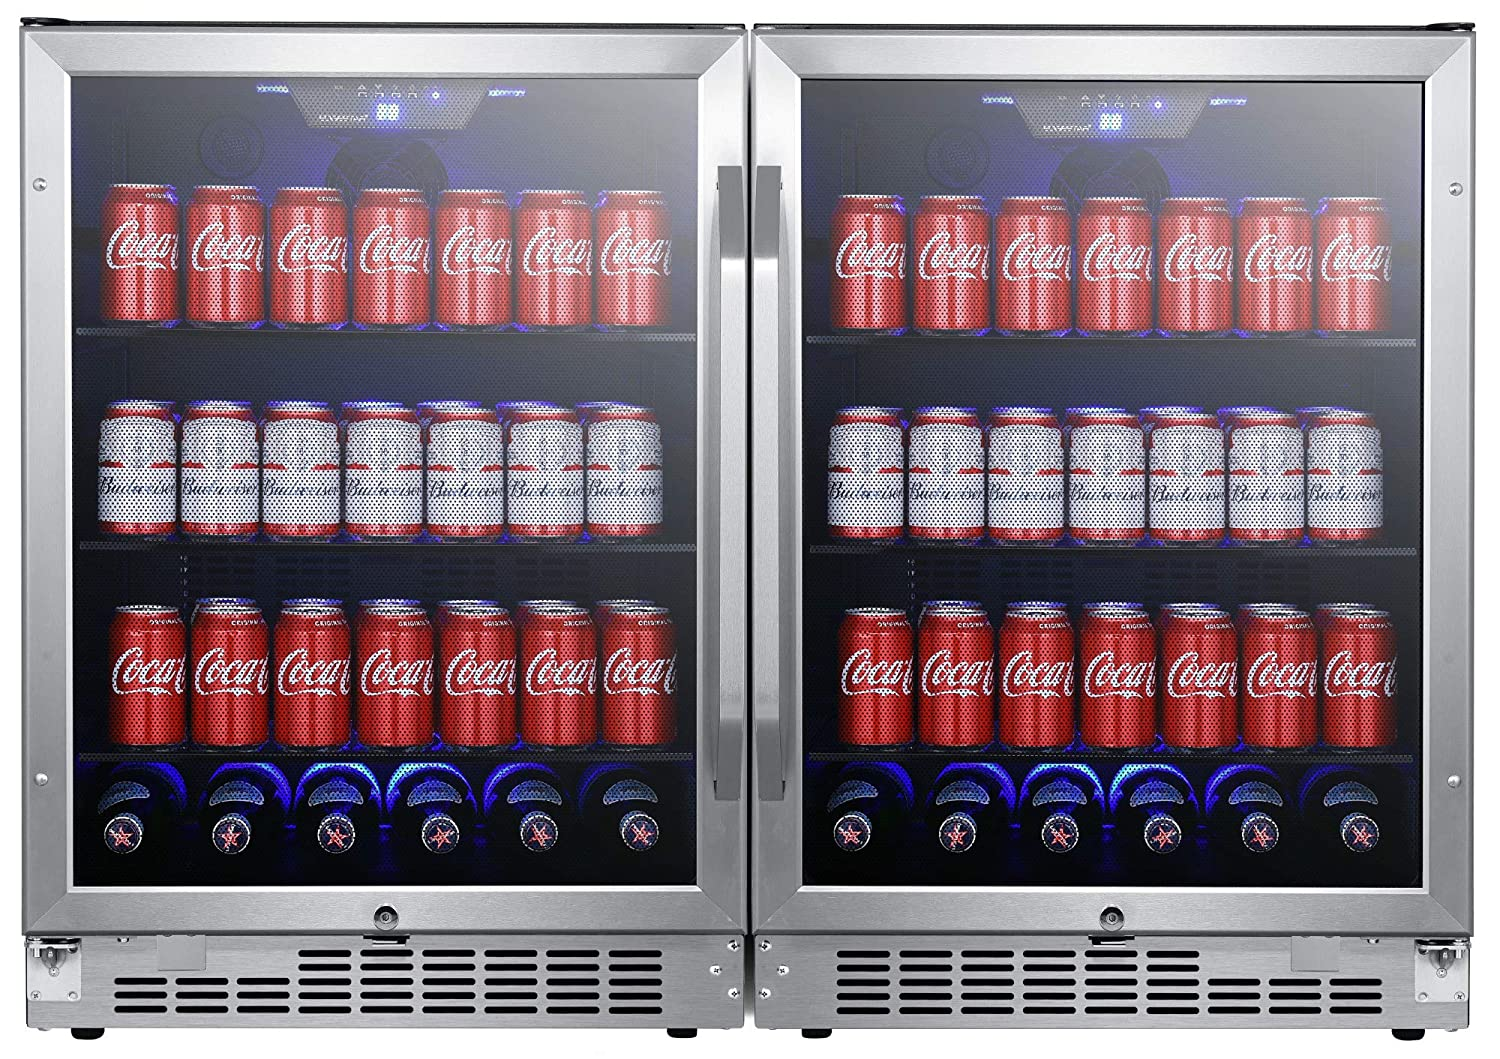 EdgeStar CBR1502SGDUAL 47 Inch Wide 284 Can Built-in Side-by-Side Beverage Cooler with LED Lighting